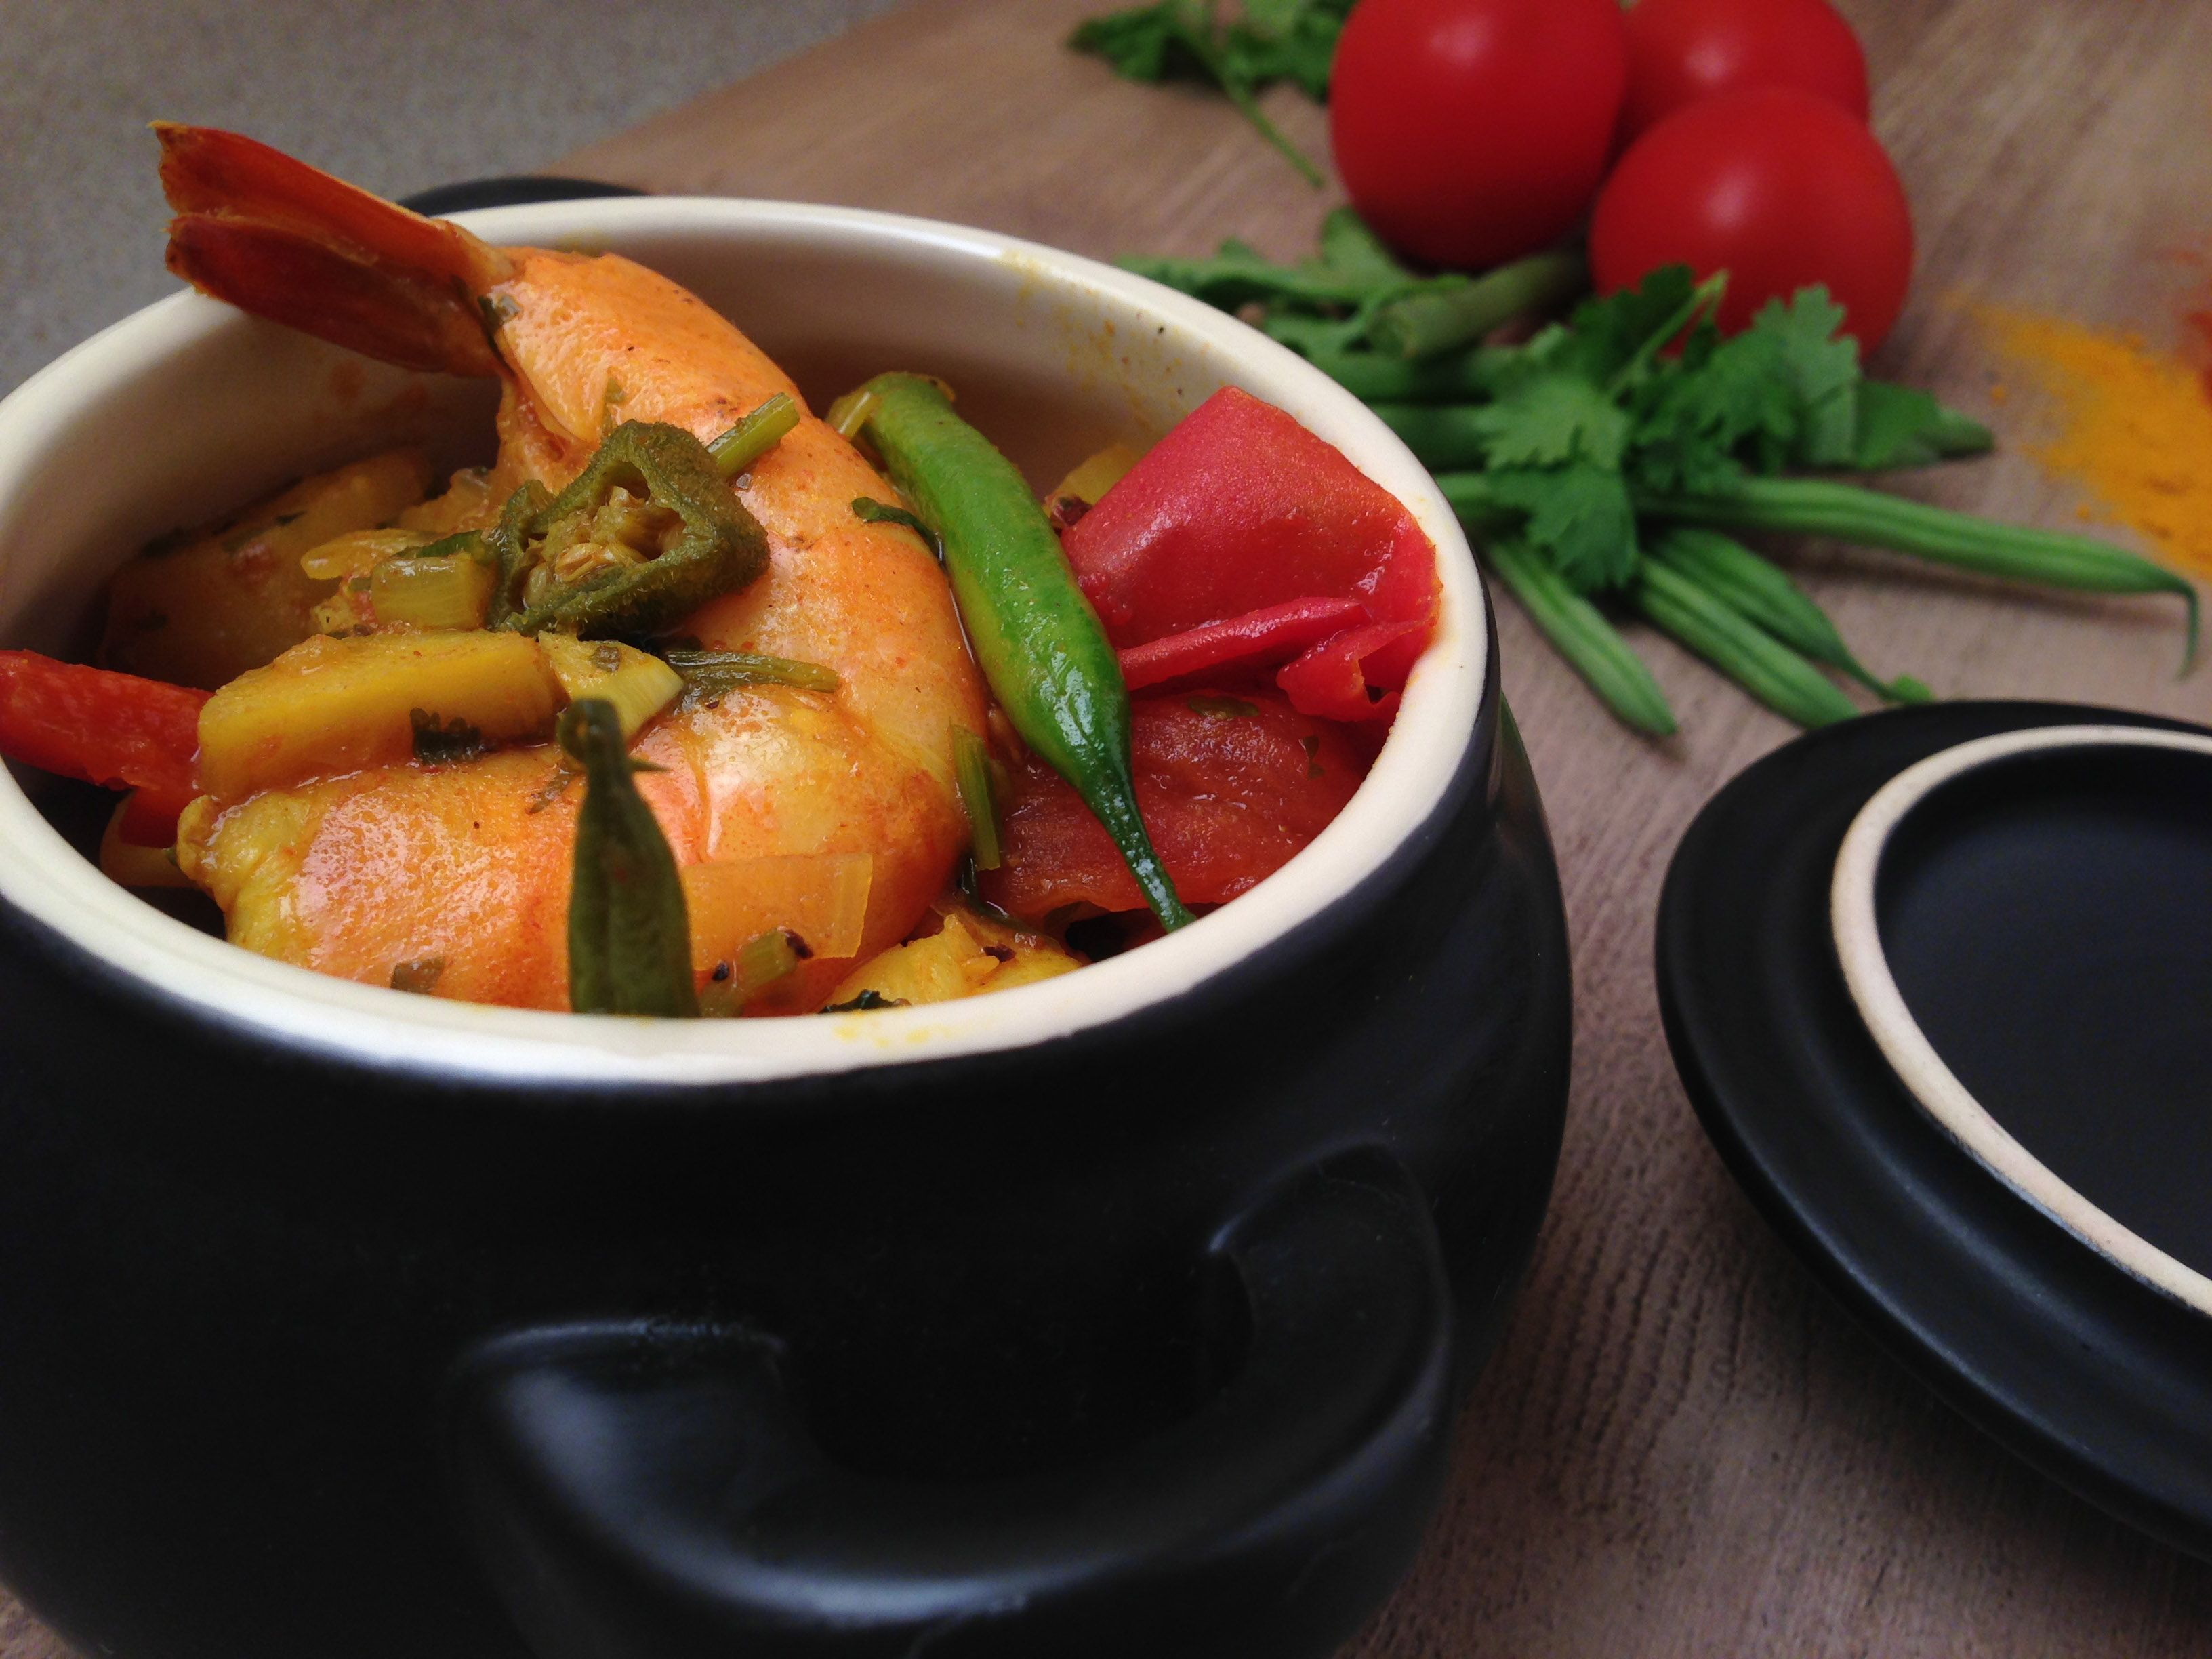 Get the full recipe here for our Coconut Prawn Curry. Not only that but you'll get the full nutritional information breakdown.